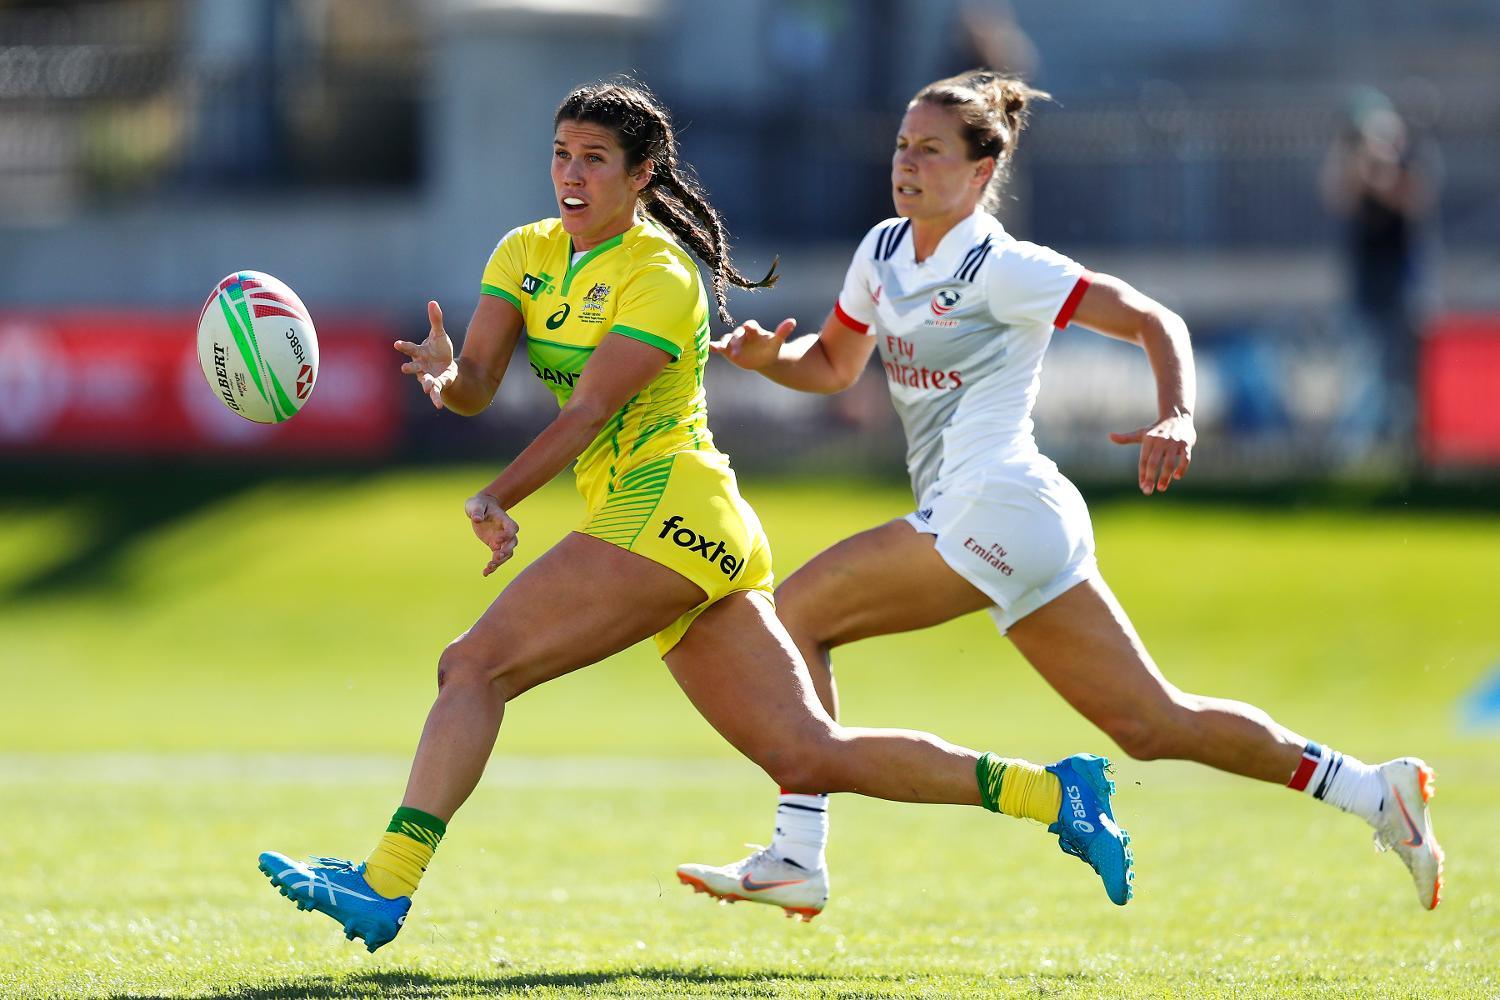 HSBC USA Women's Sevens 2018